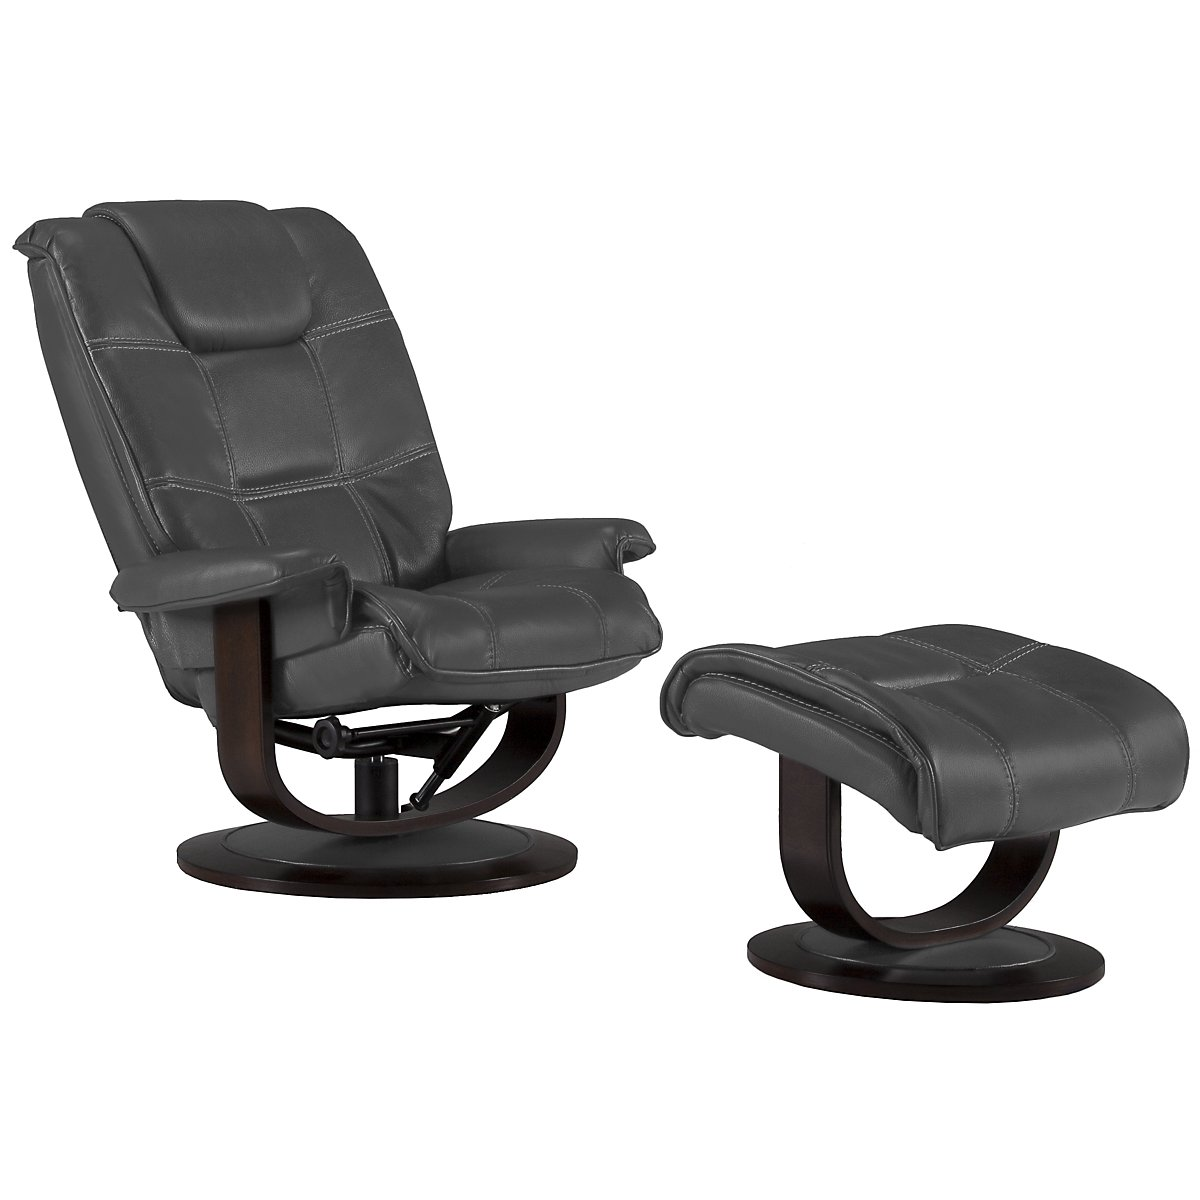 Regan Gray Microfiber Recliner & Ottoman